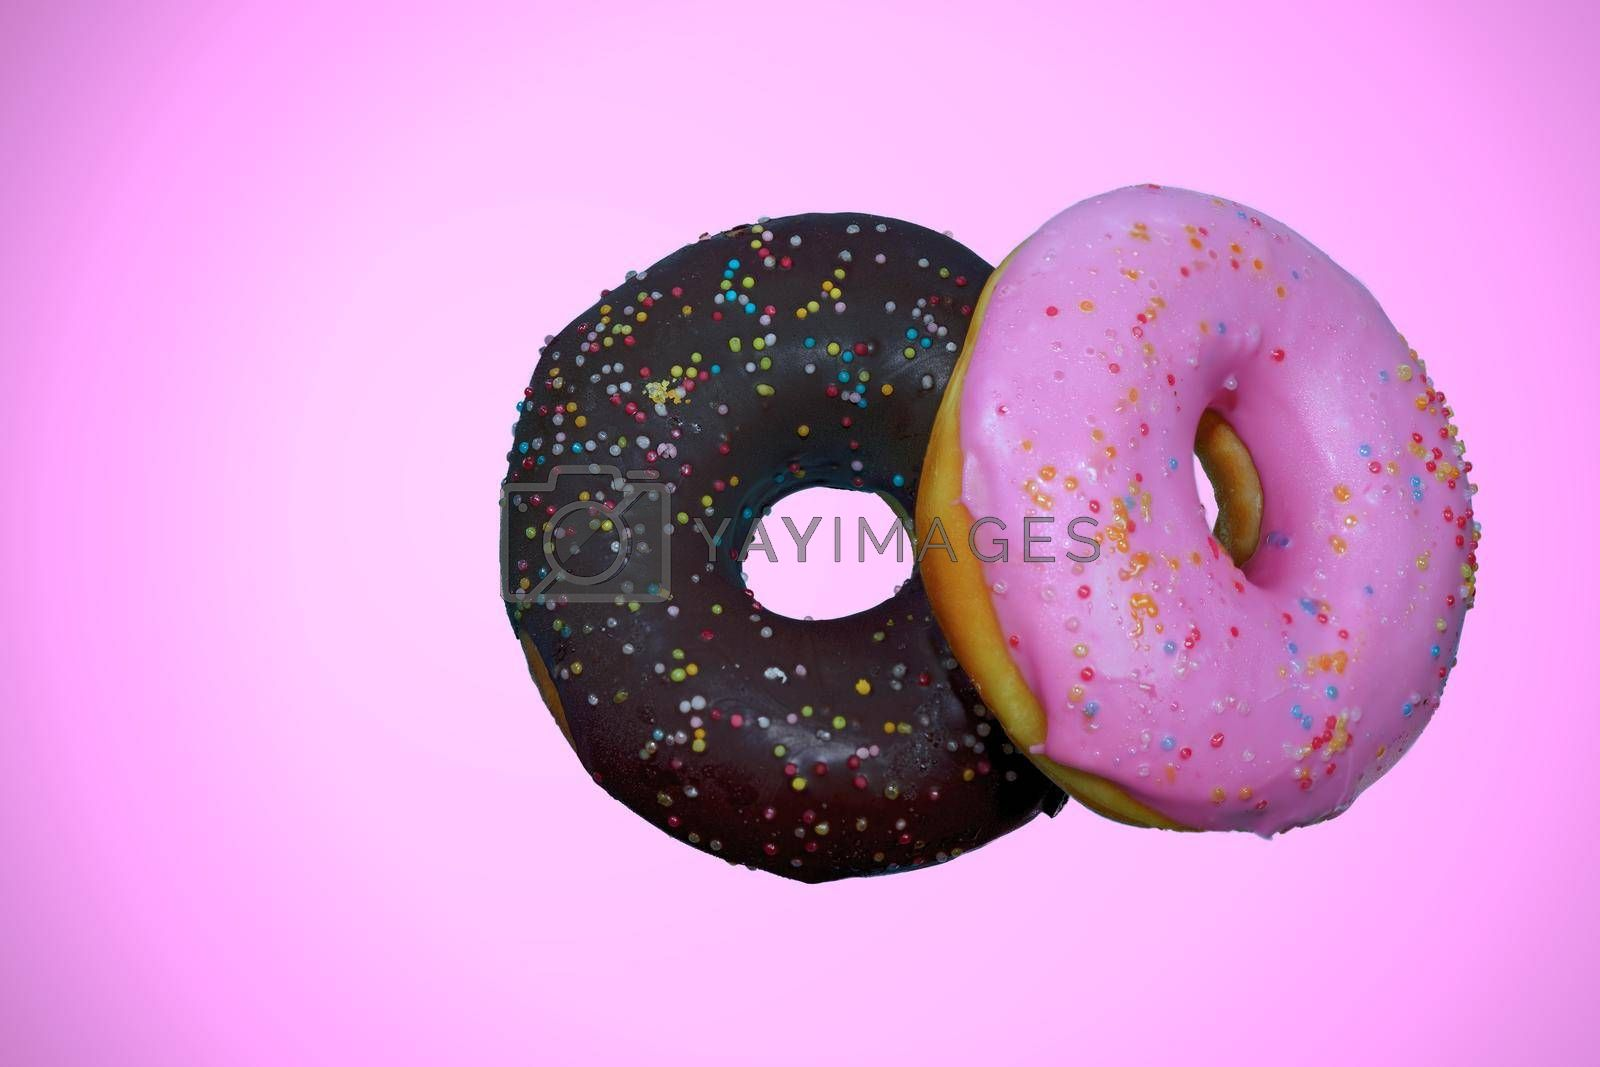 Pink Cream Donuts and Chocolate Donuts Pink background isolated.